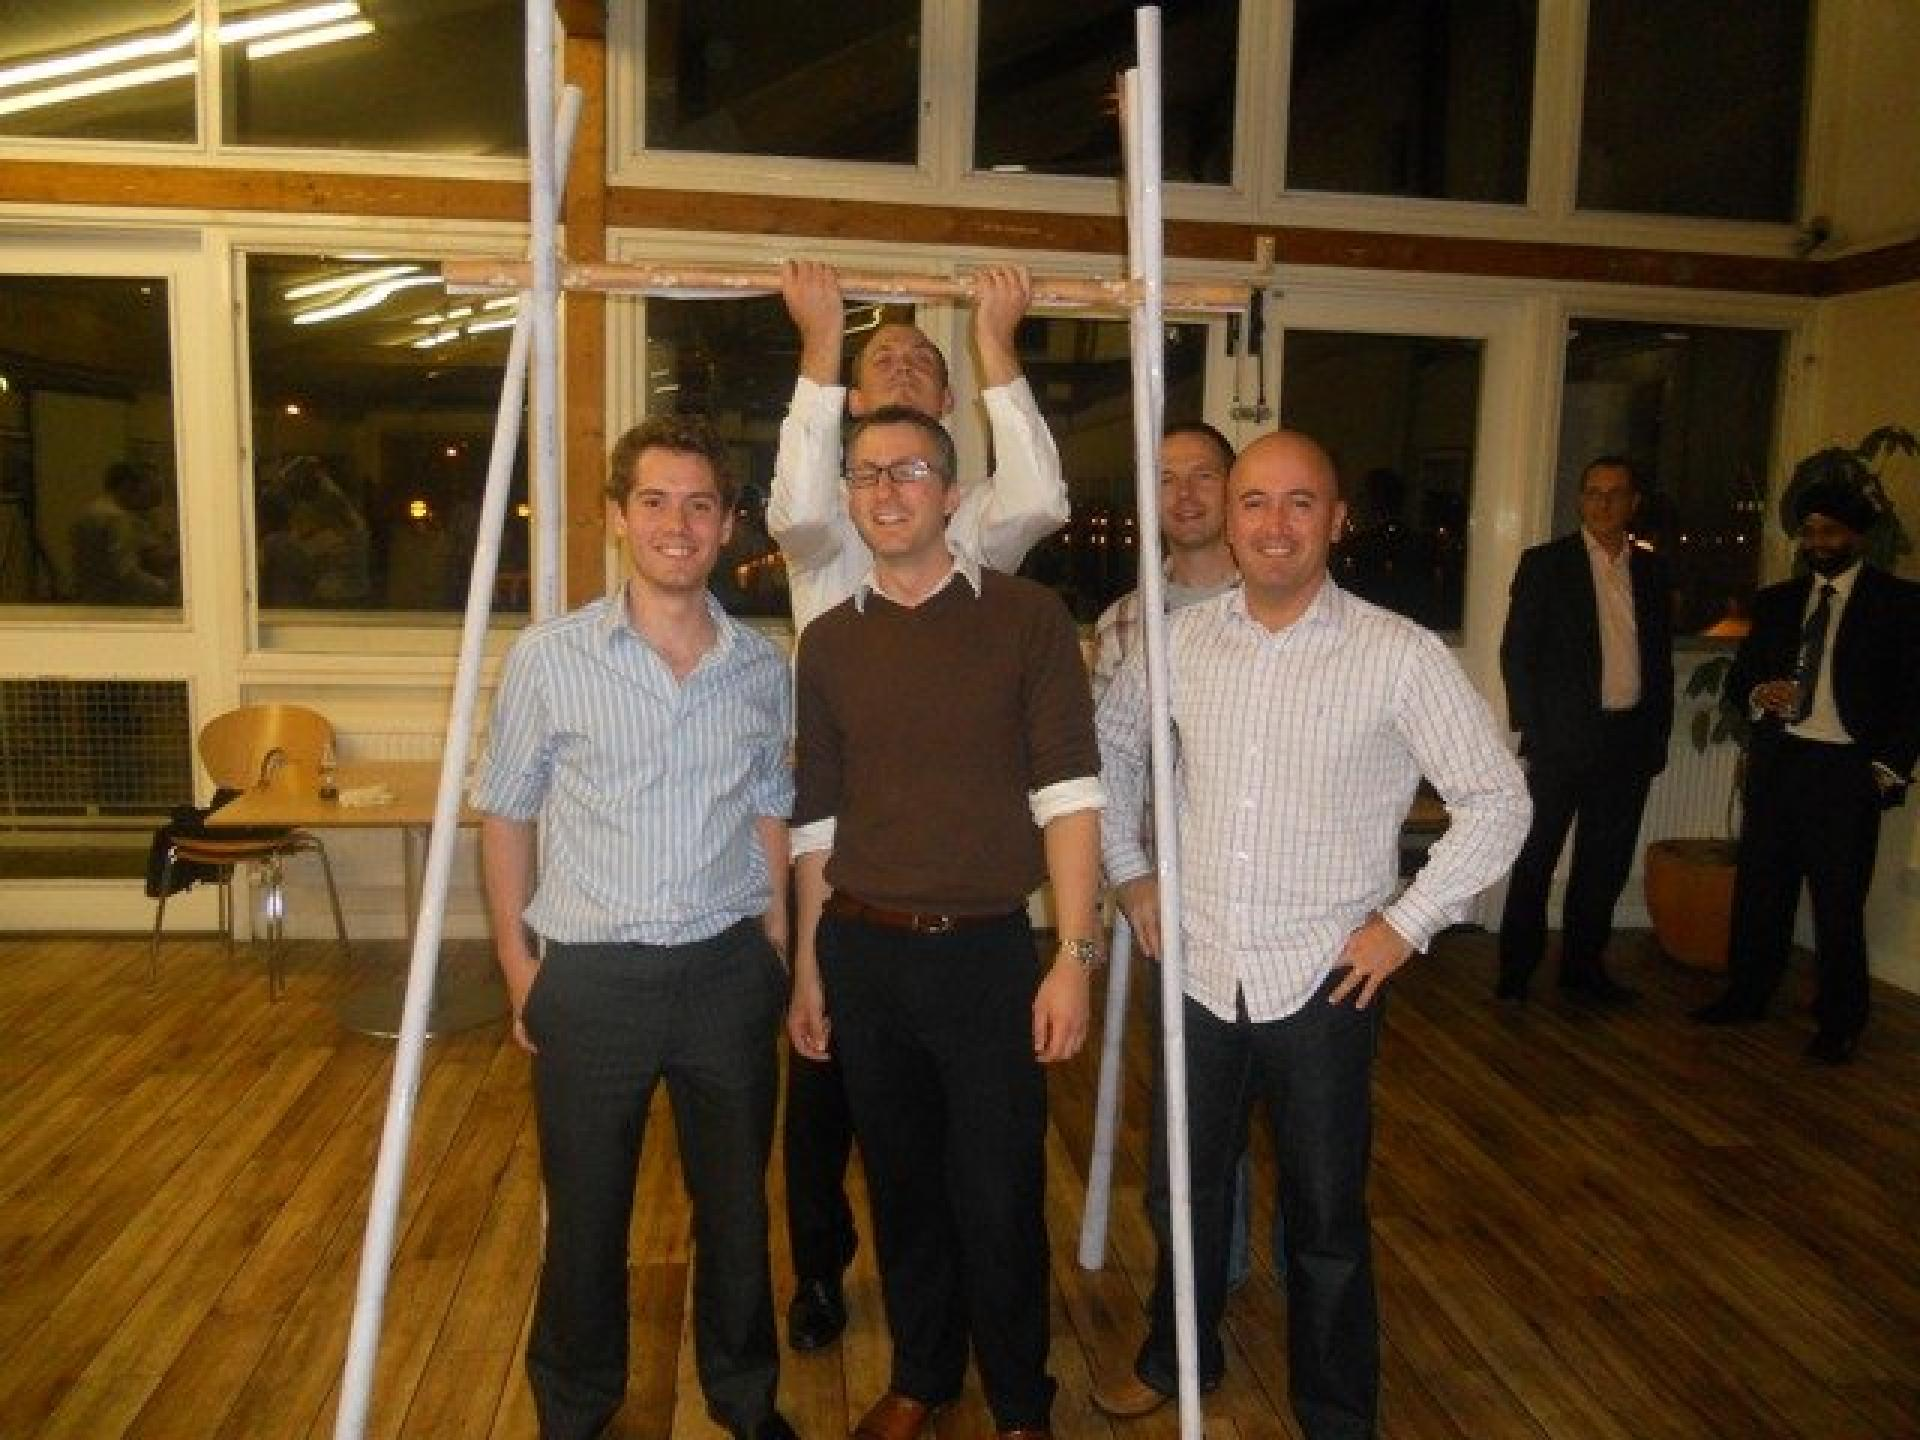 Team Building, London, October 2012